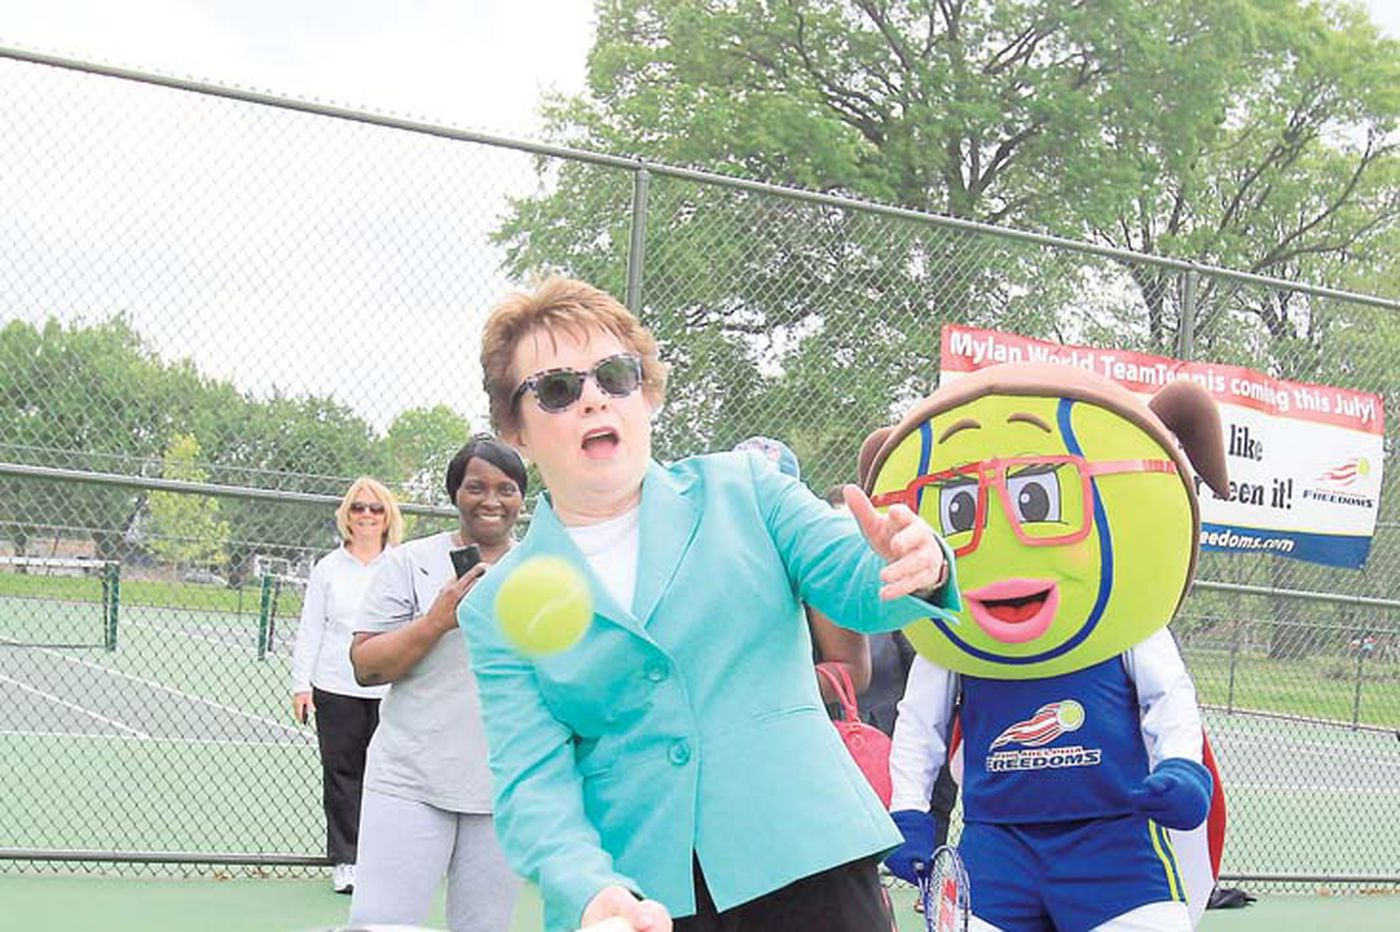 Philadelphia Freedoms owner Billie Jean King discusses COVID-19, following the WTT tournament and social injustice